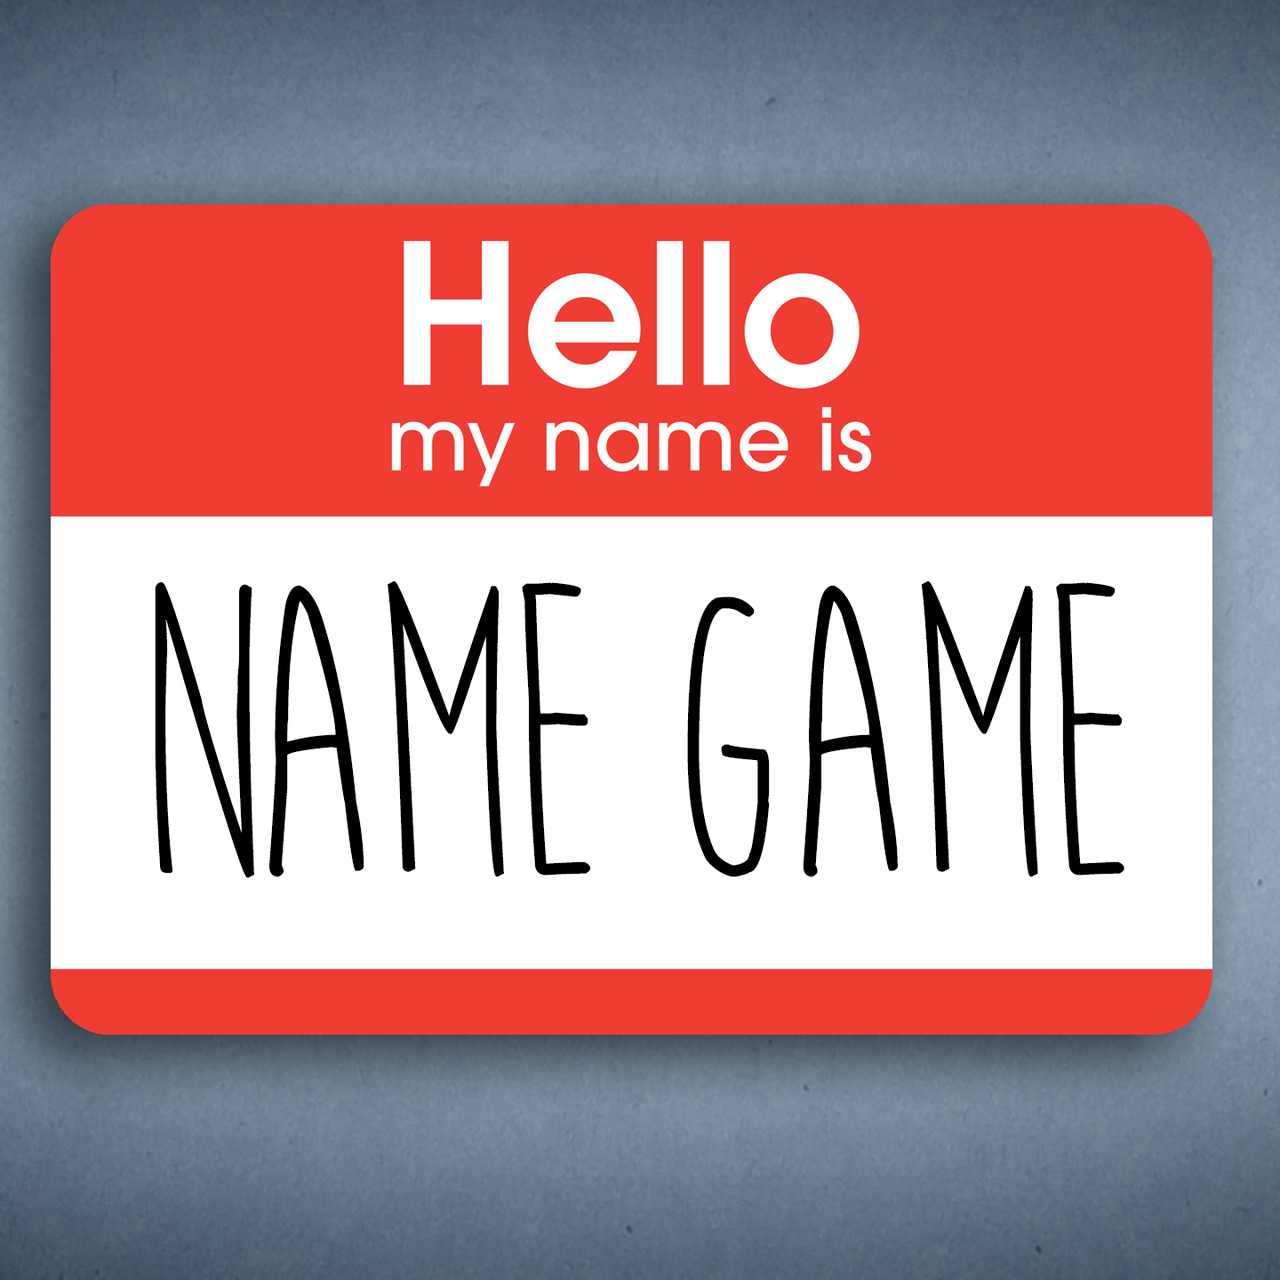 Name Game by Spidey & Rick Lax